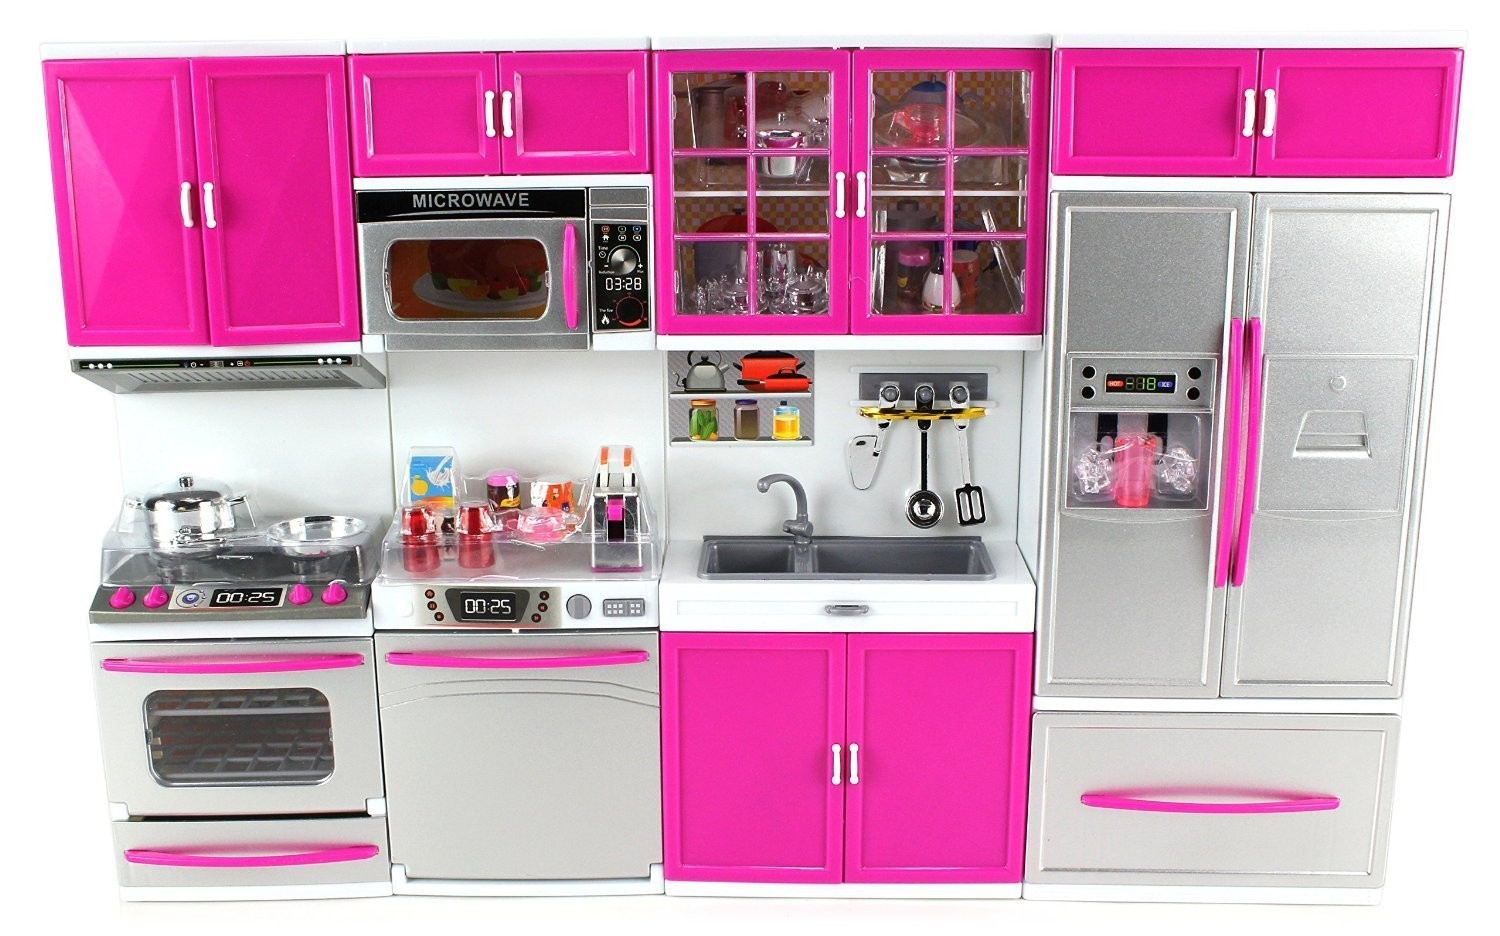 My Modern Kitchen 32 Full Deluxe Kit Battery Operated Kitchen Playset Refrigerator Stove Sink